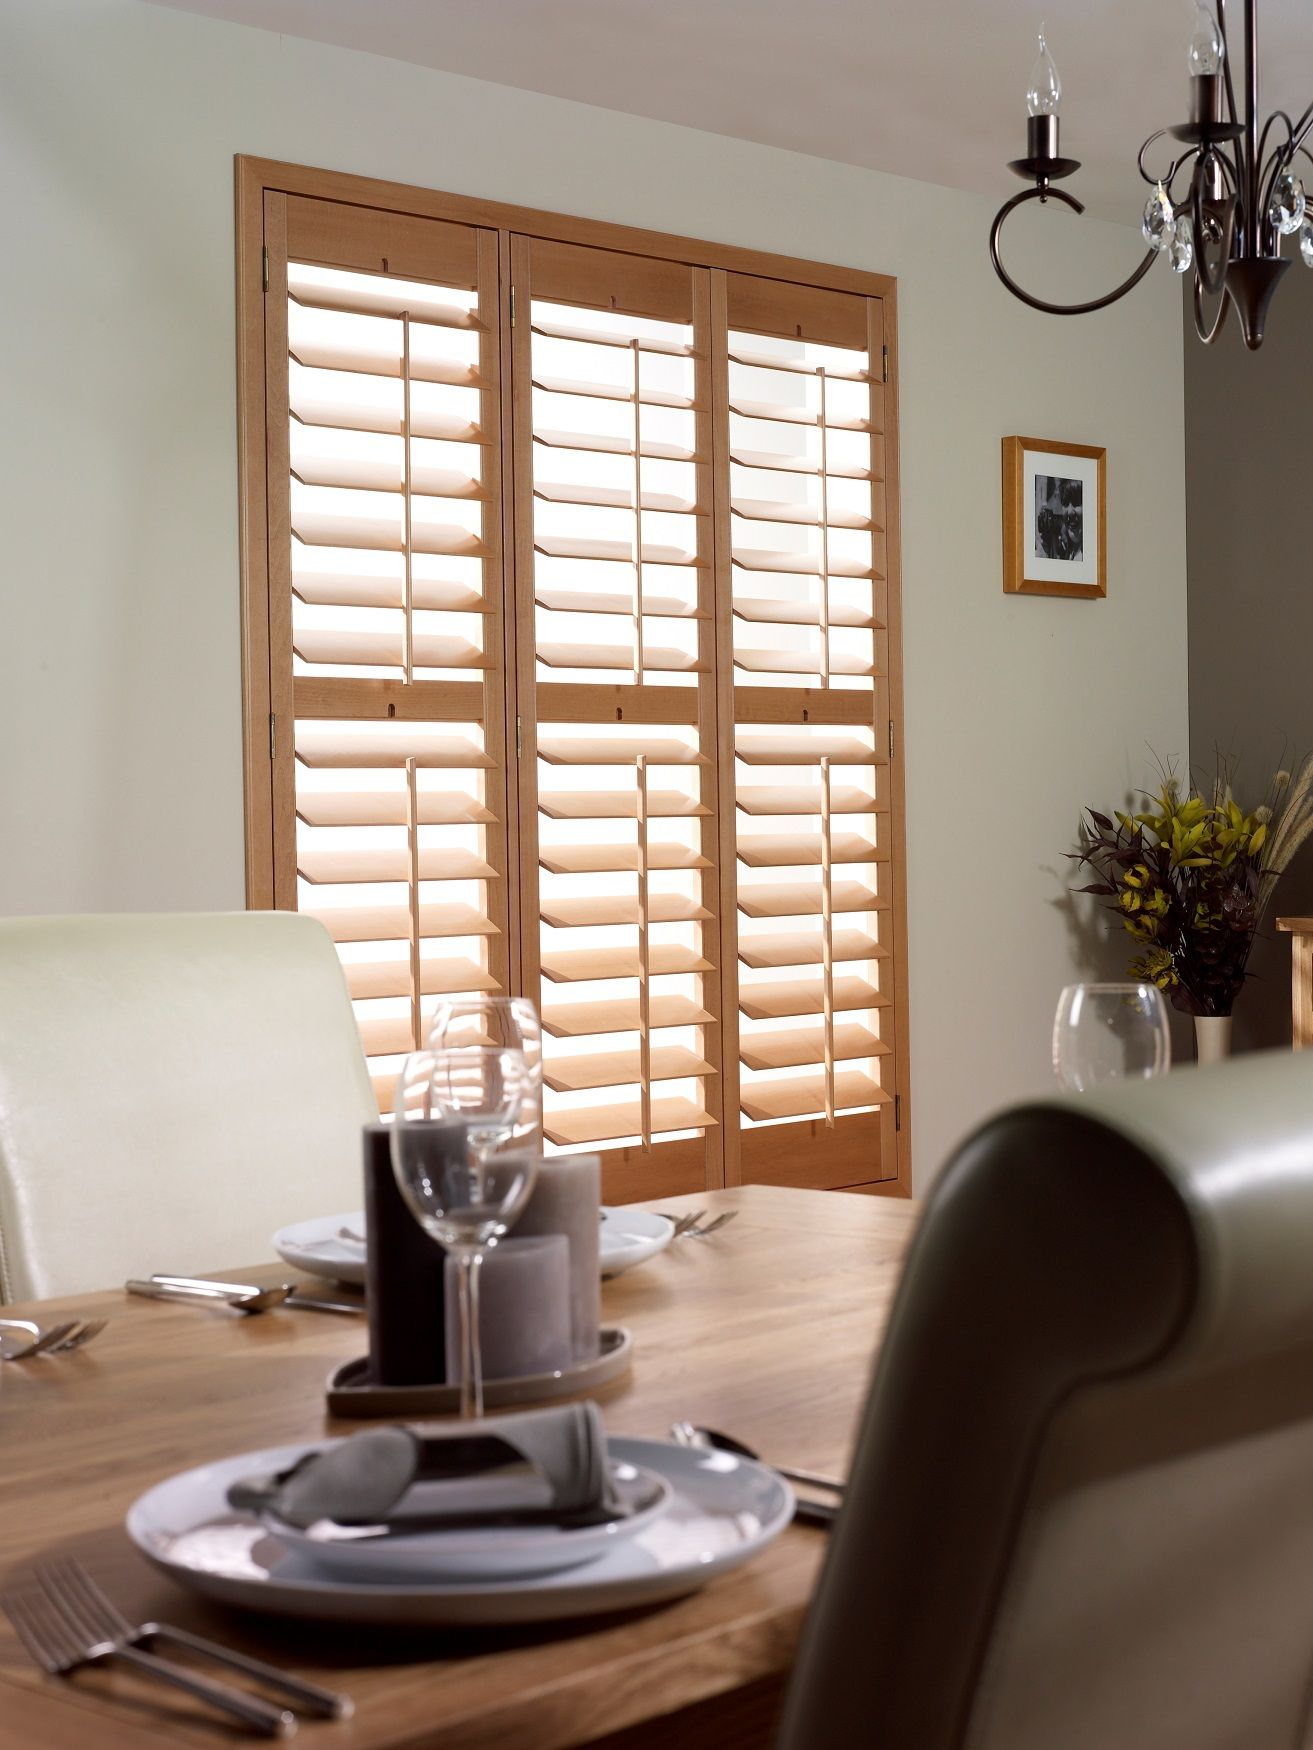 Shutters By Apollo Blinds Modern Window Dressing Dining Room Shutters Dining Room Decor Contemporary Modern Window Dressing Contemporary Home Decor Blinds